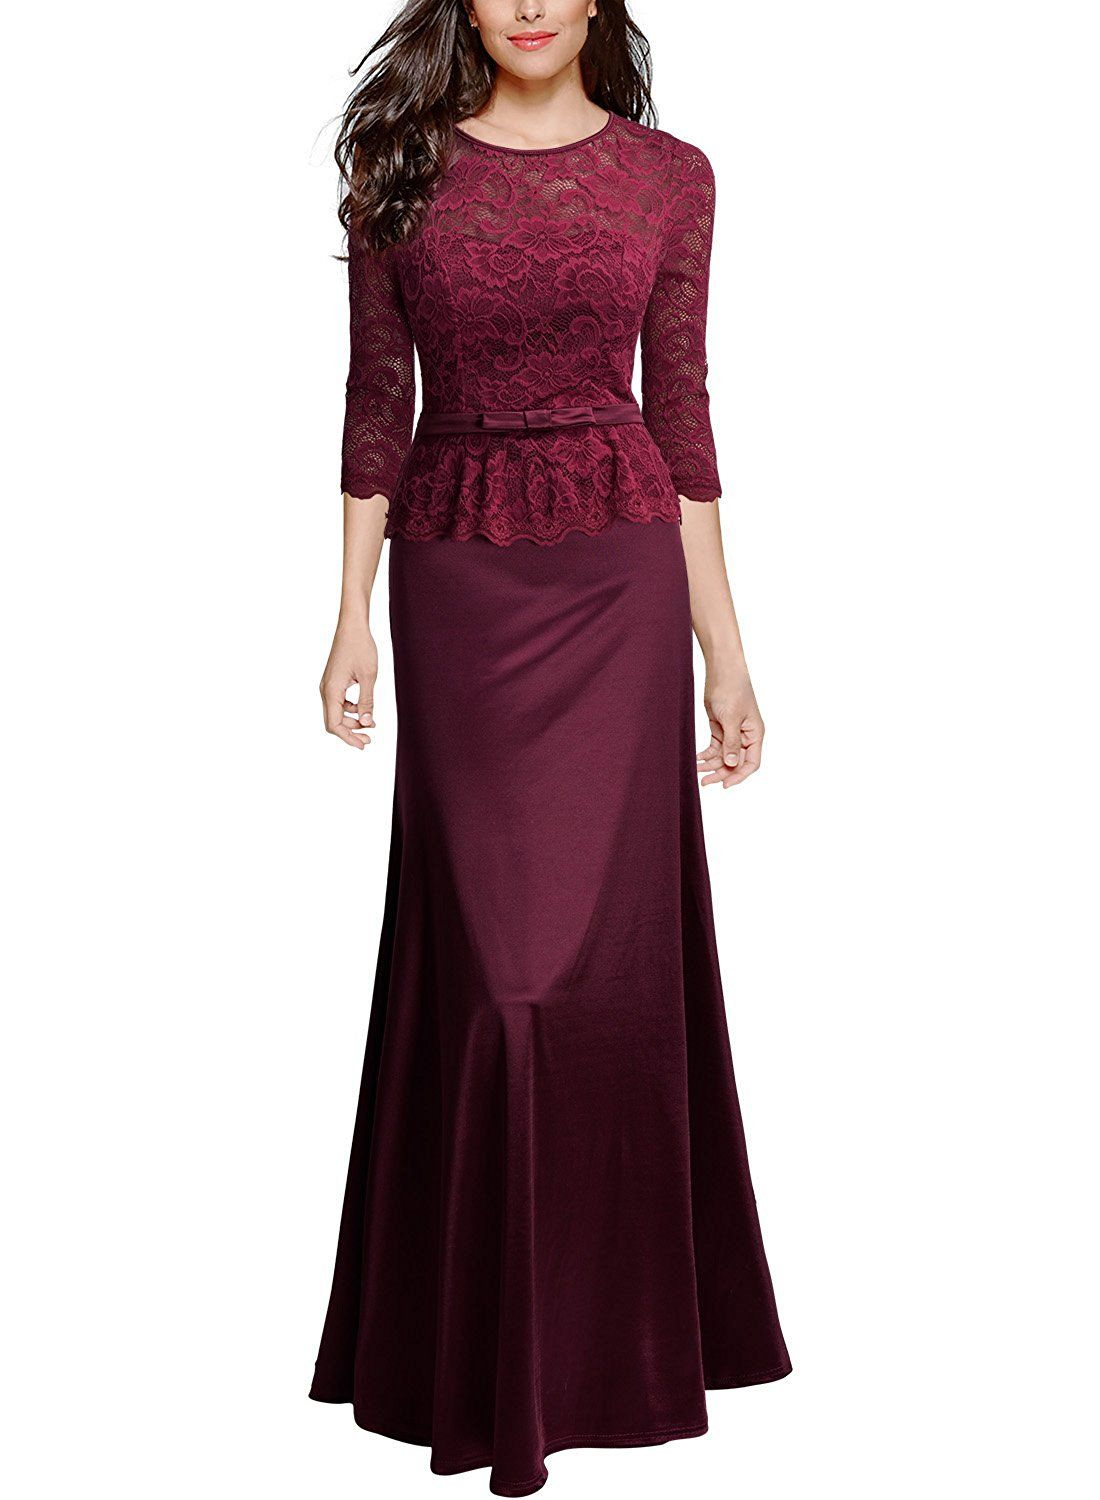 Miusol® Elegant Damen Spitzen Abendkleid 3/4 Arm Kleid Brautjungfer ...